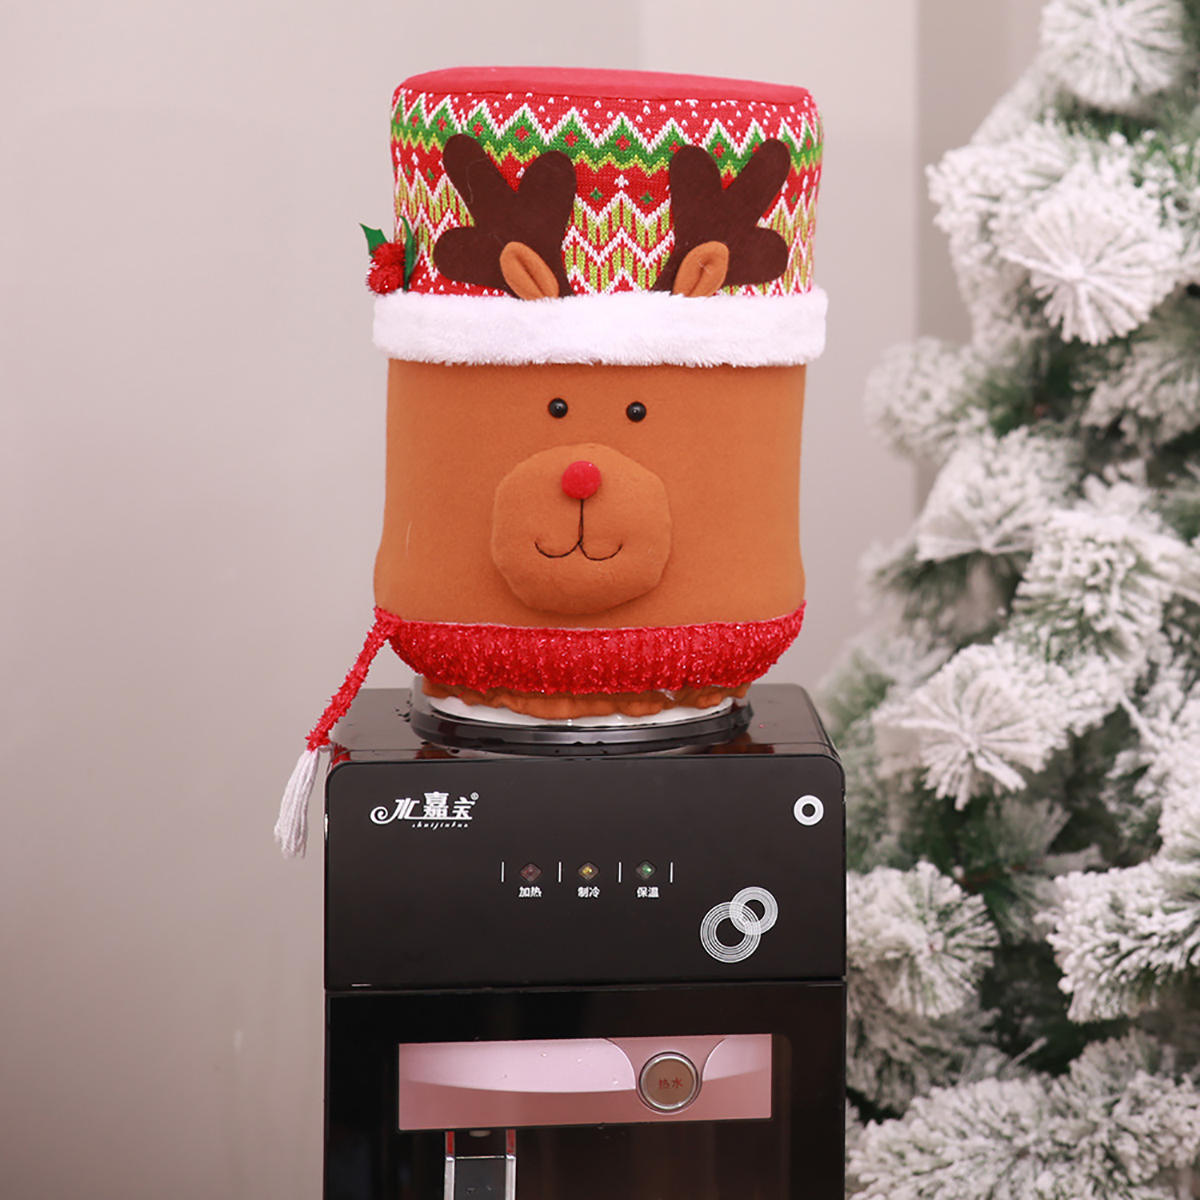 Water Bucket Dispenser Dust Cover Purifier Container Bottle Christmas Xmas Decorations - 3